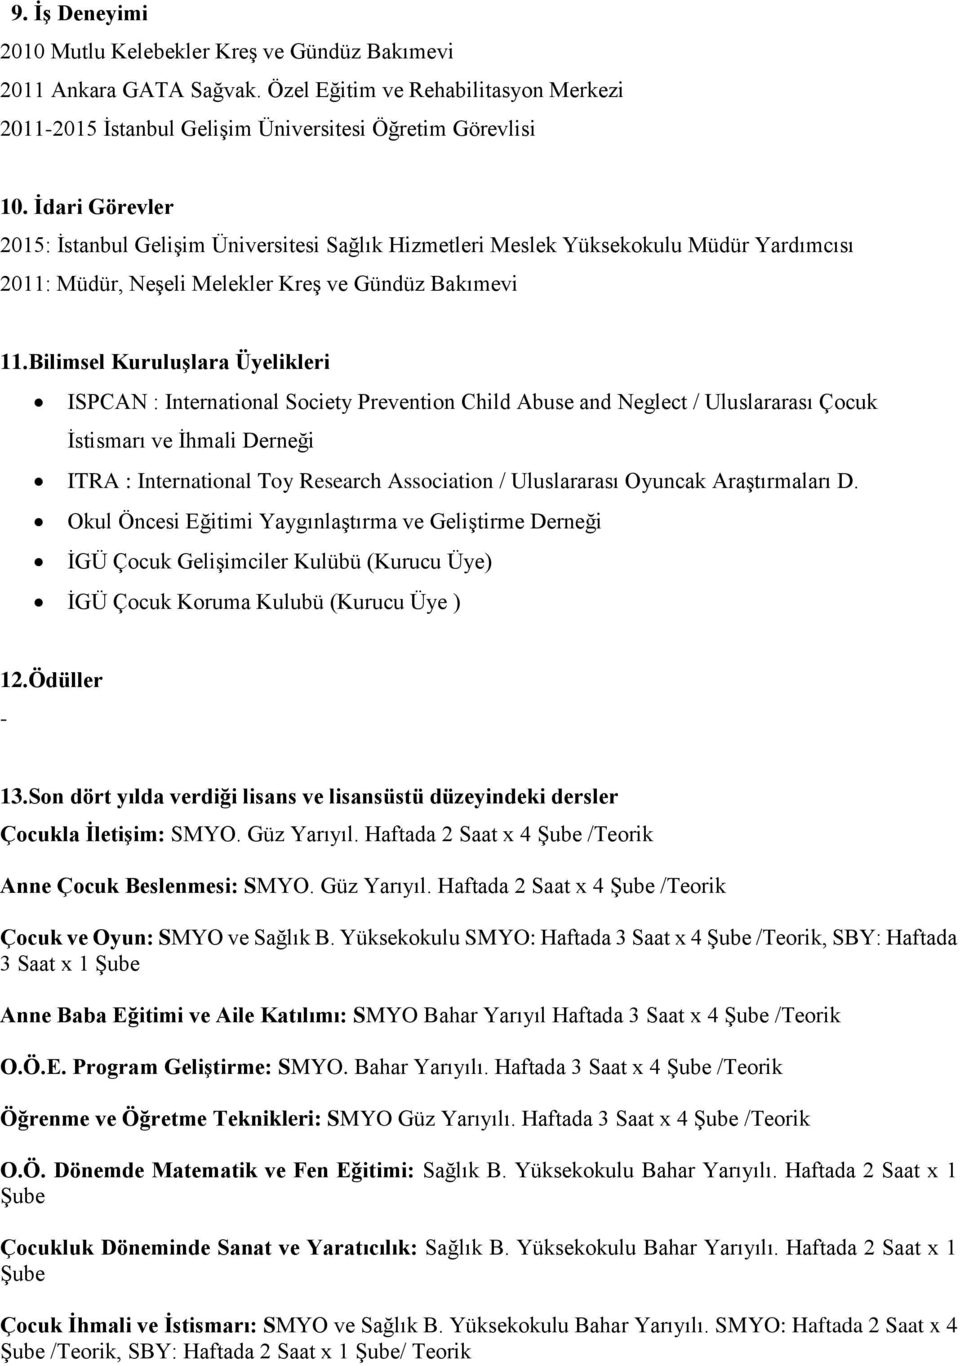 Bilimsel Kuruluşlara Üyelikleri ISPCAN : International Society Prevention Child Abuse and Neglect / Uluslararası Çocuk İstismarı ve İhmali Derneği ITRA : International Toy Research Association /